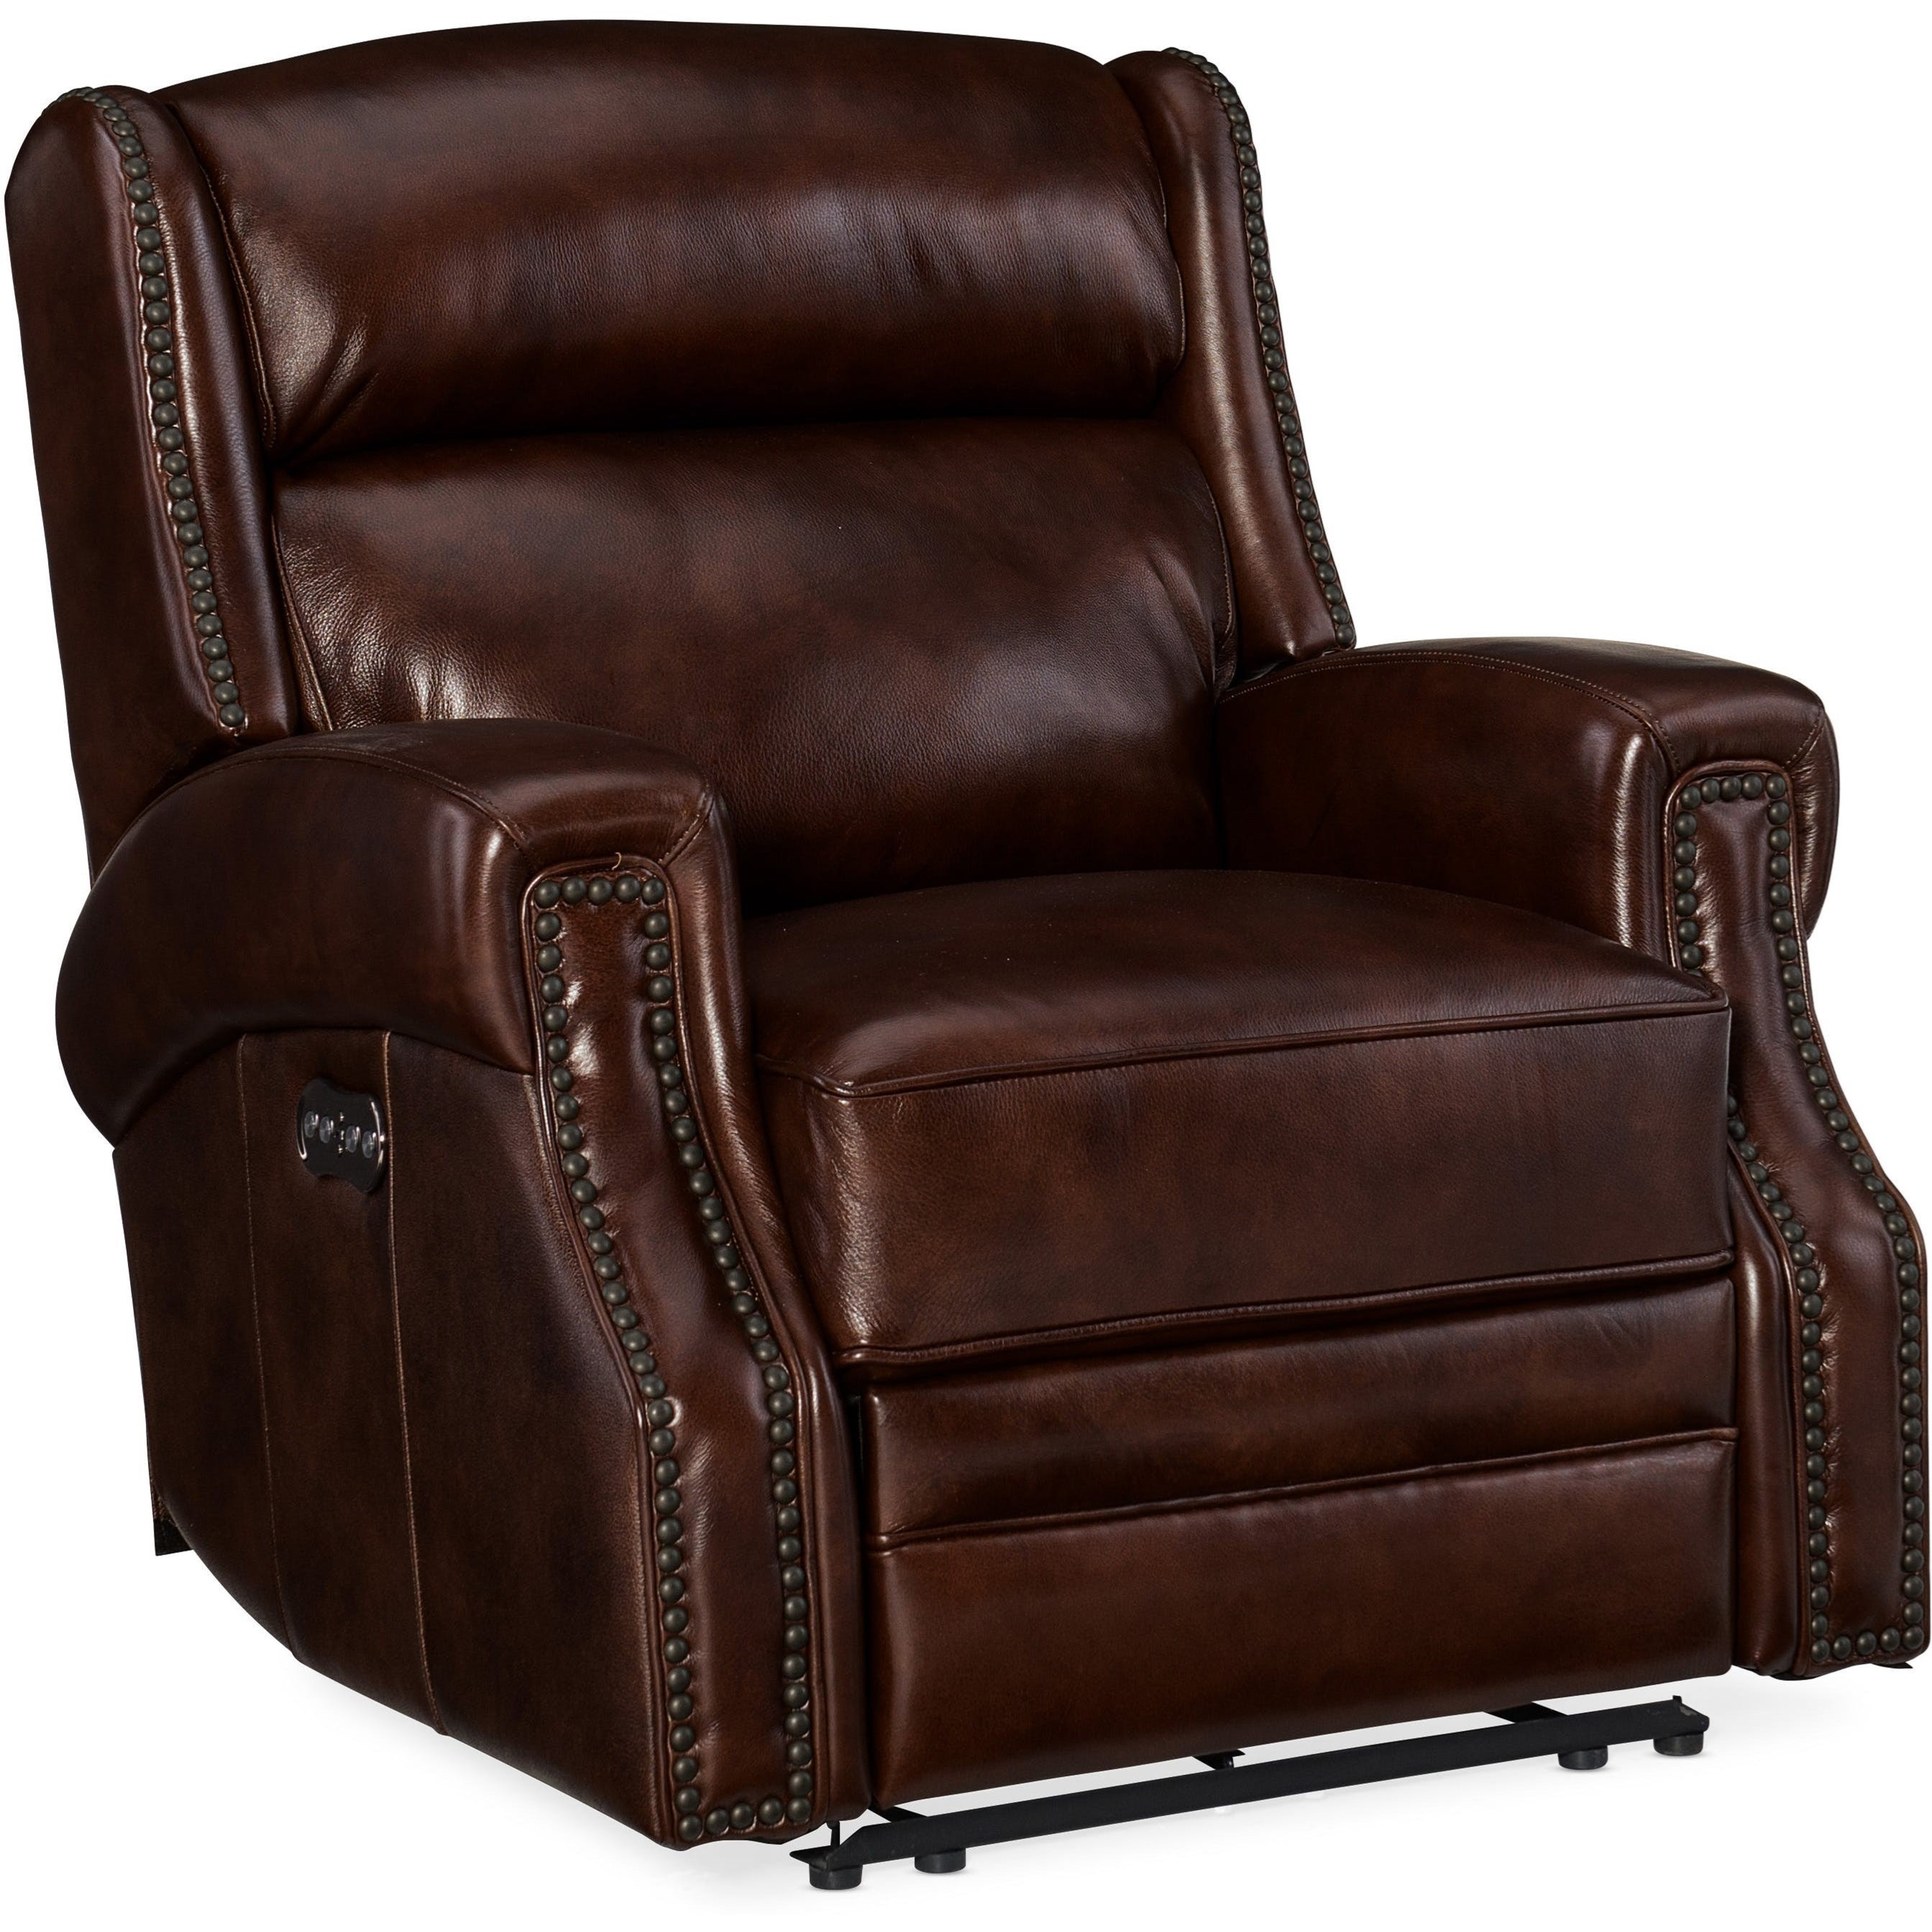 Carlisle Power Recliner with Power Headrest by Hooker Furniture at Miller Waldrop Furniture and Decor